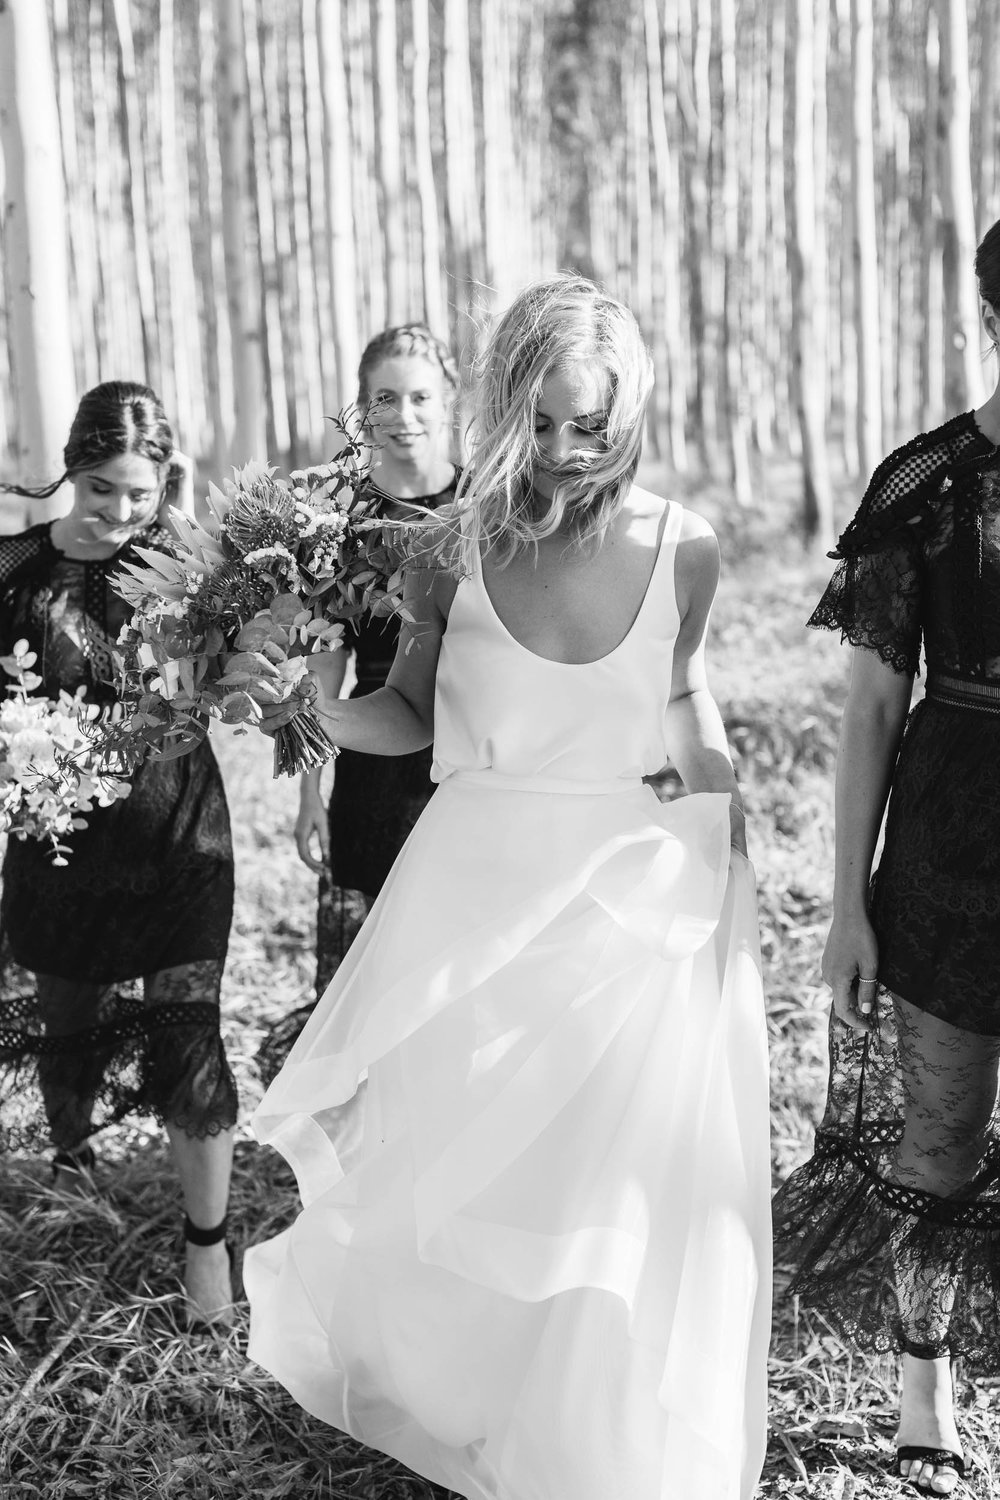 Kas-Richards-Wedding-Photographer-Country-Winery-Wedding-One-Day-Bridal-Gown-48.jpg